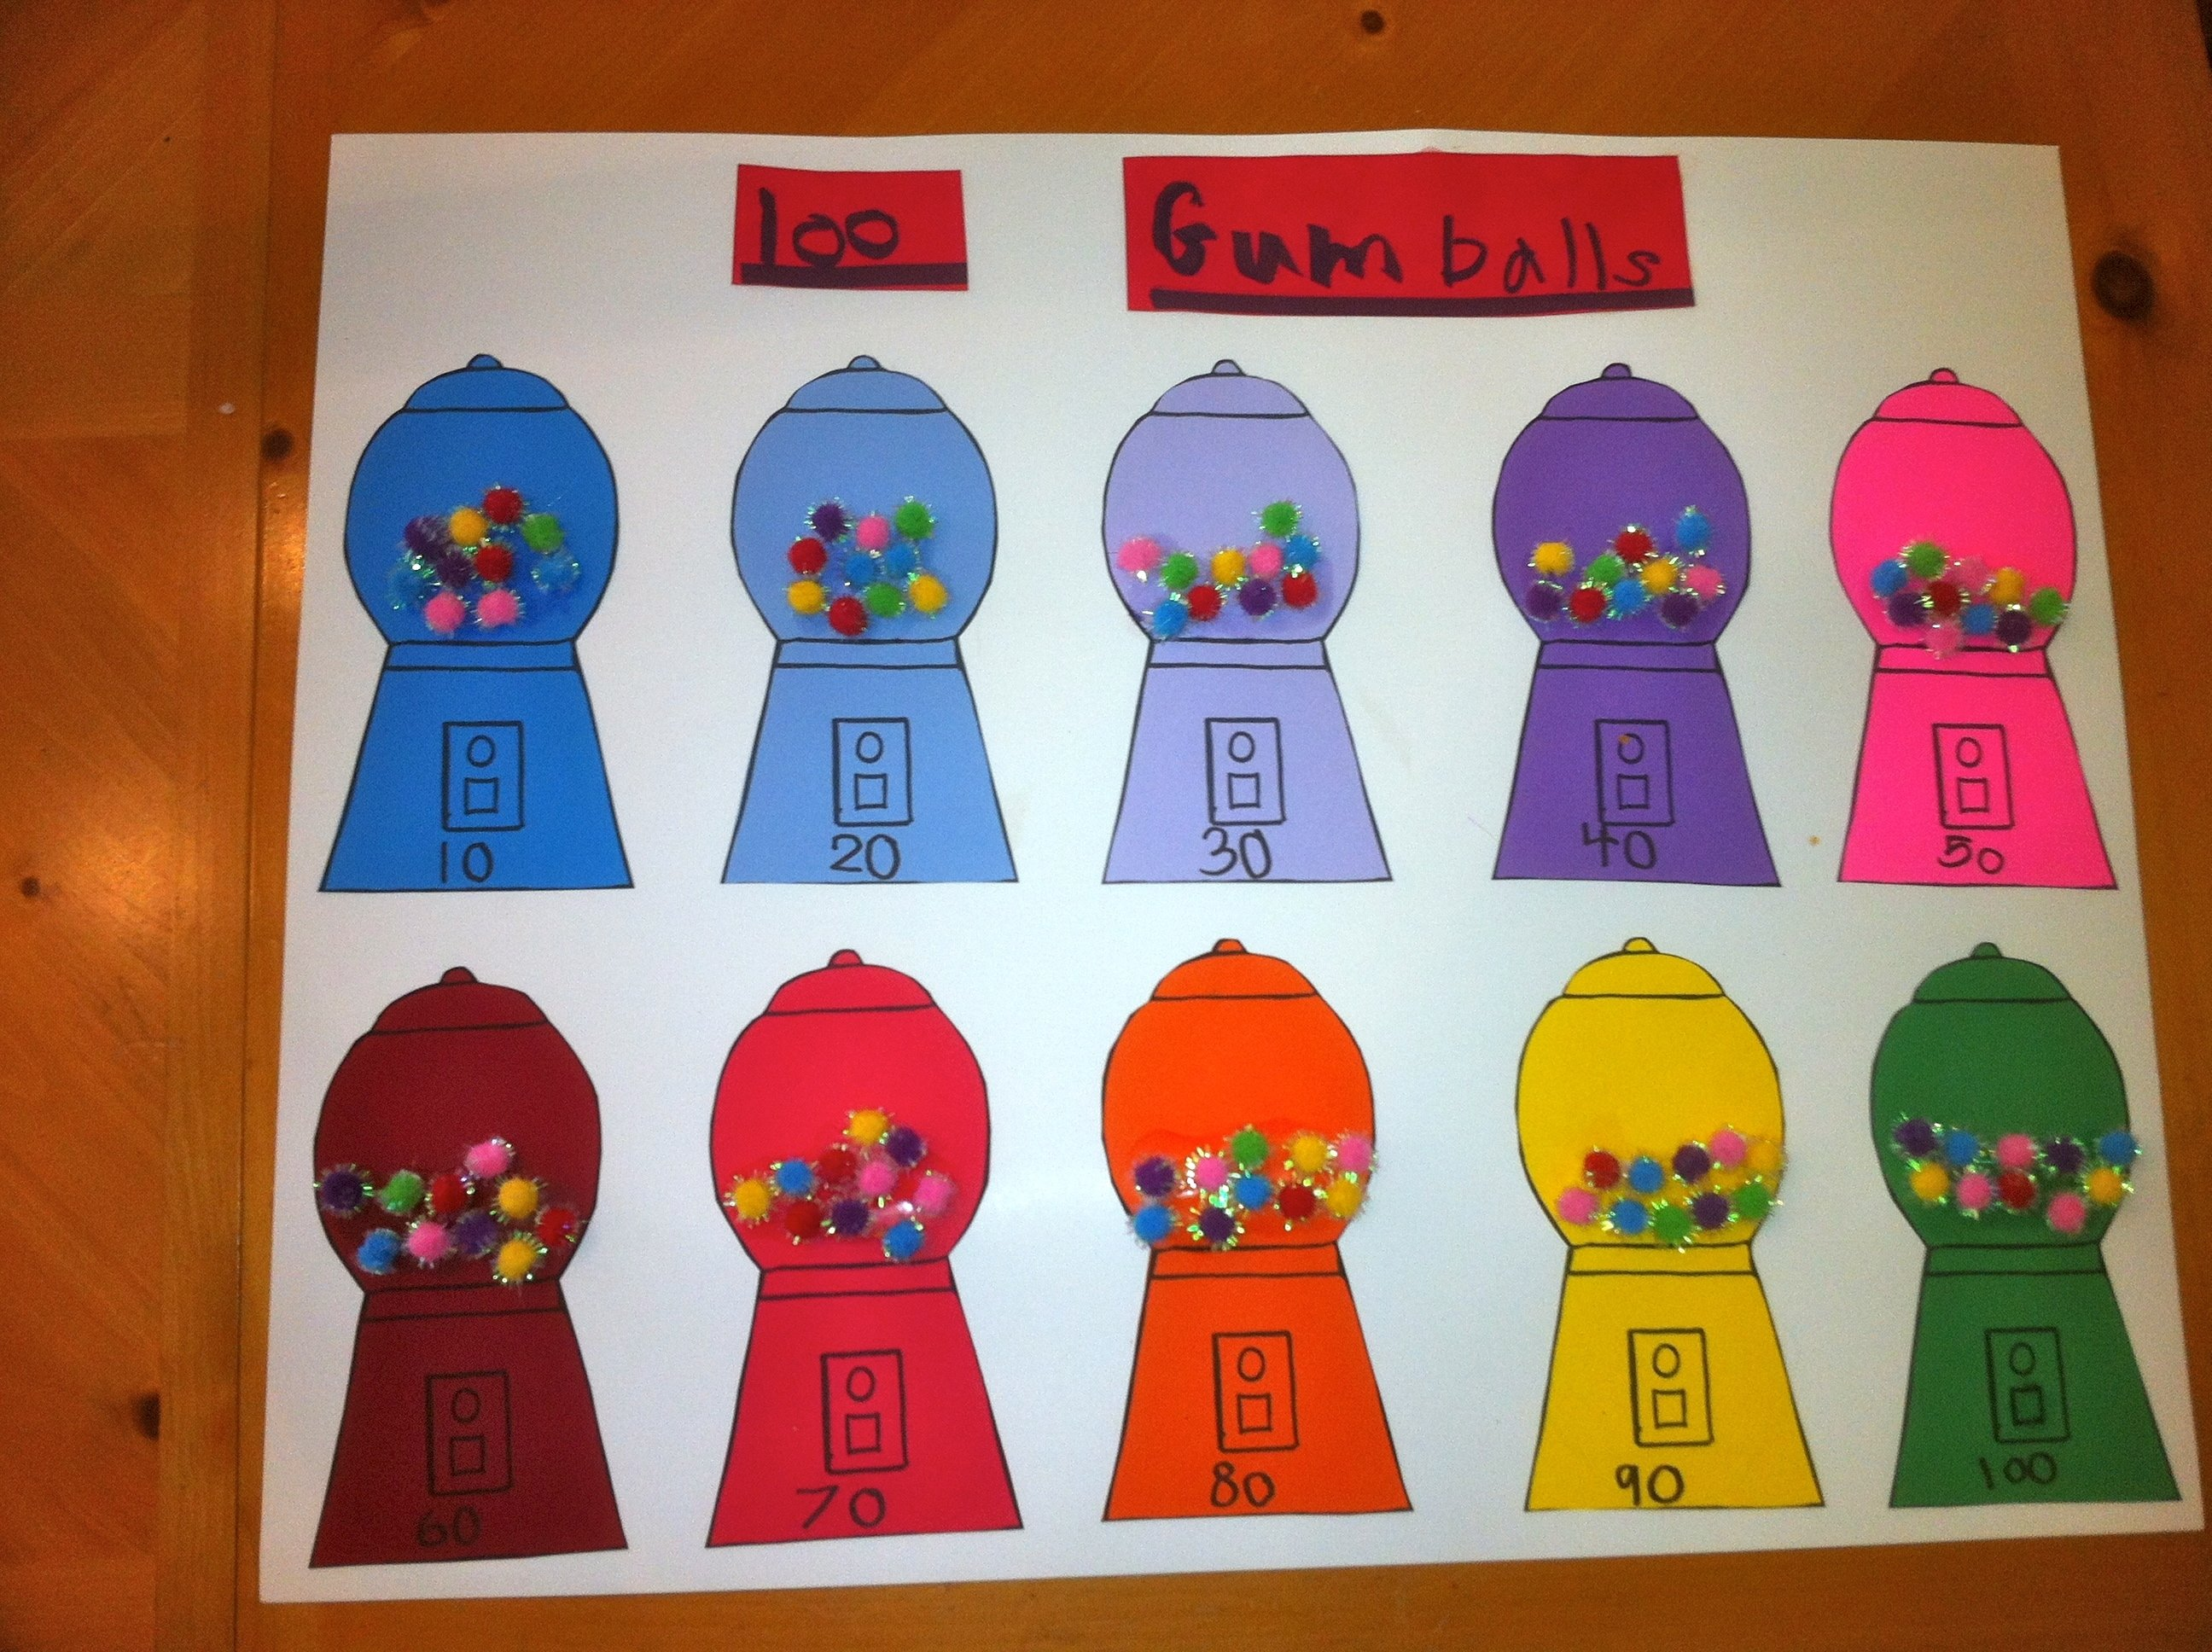 10 Cute 100Th Day Of School Poster Ideas 100th day of school poster gumball machines with pompoms kid